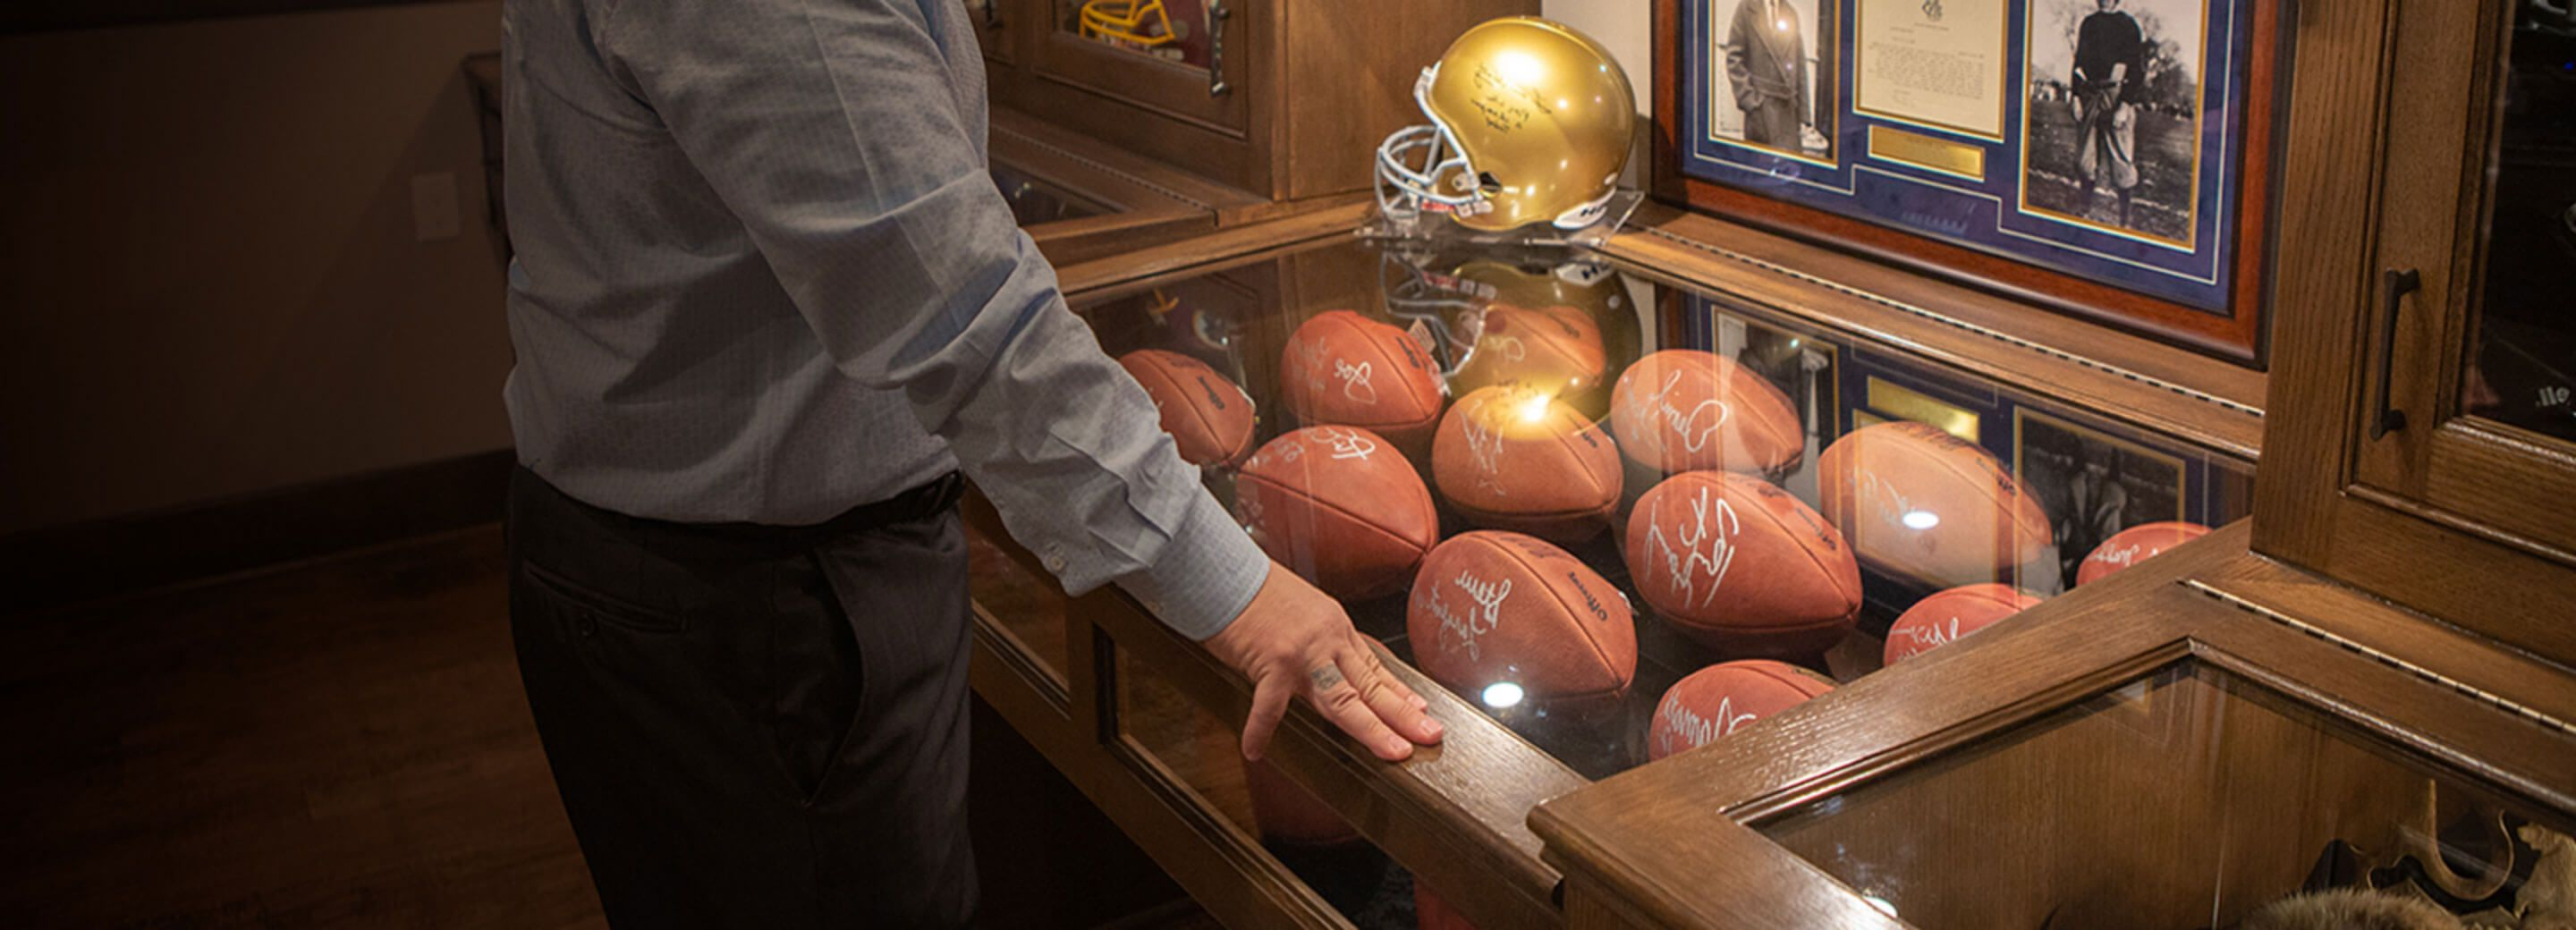 See how one homeowner transformed his rare collection of memorabilia with Senseon's complete access control.